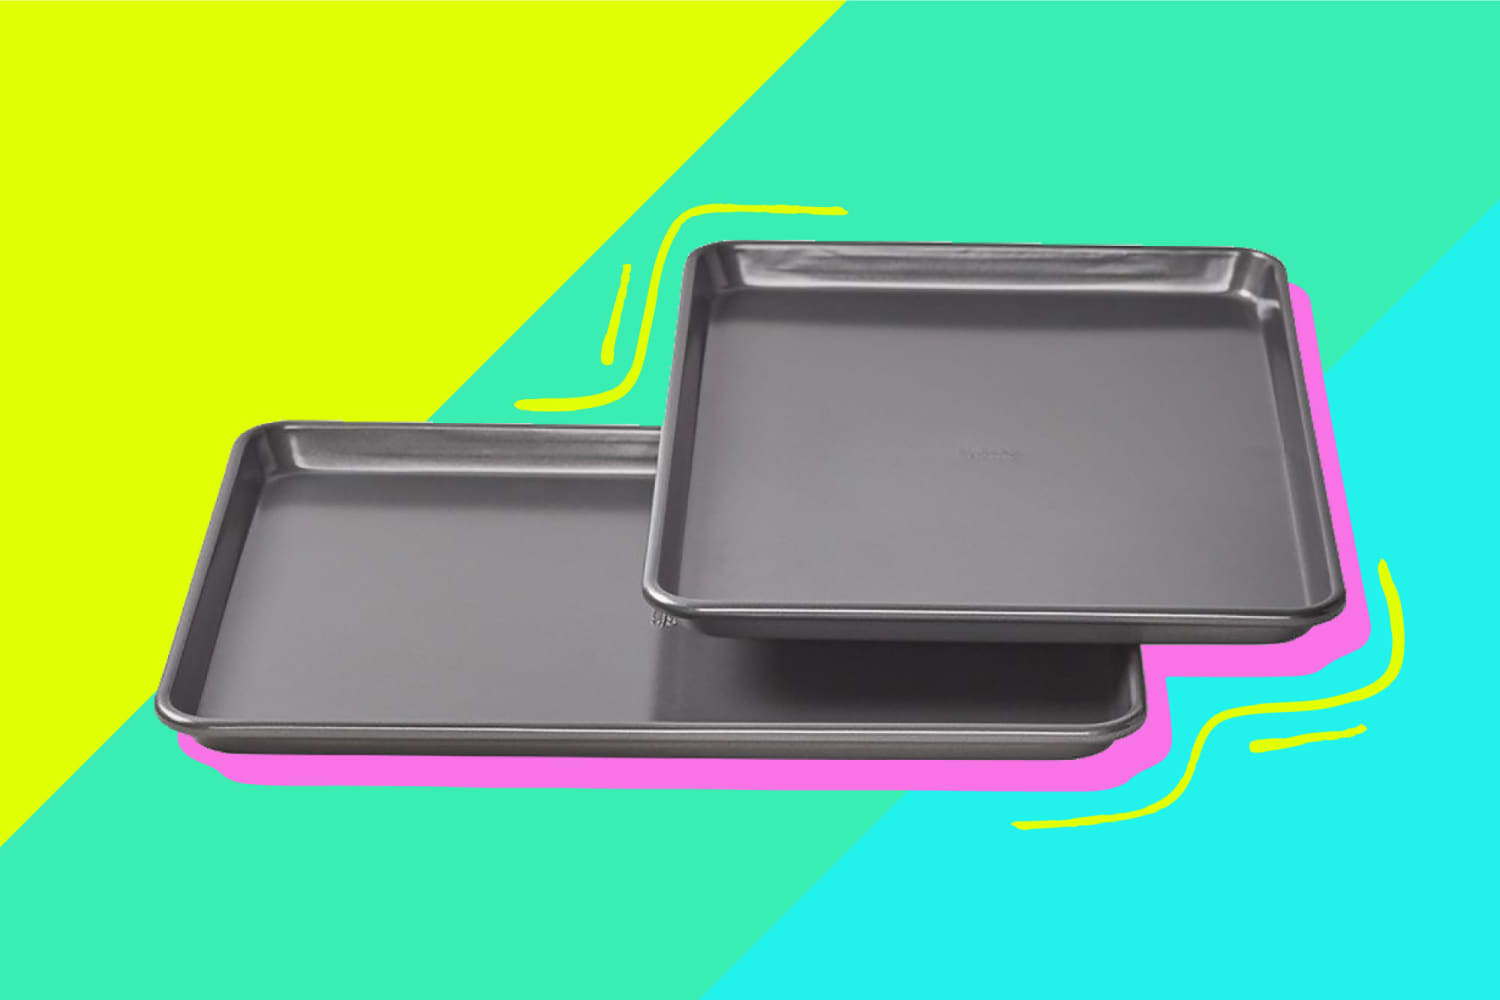 This Pro-Approved Bakeware Is on Sale on Amazon — Here Are Our Picks